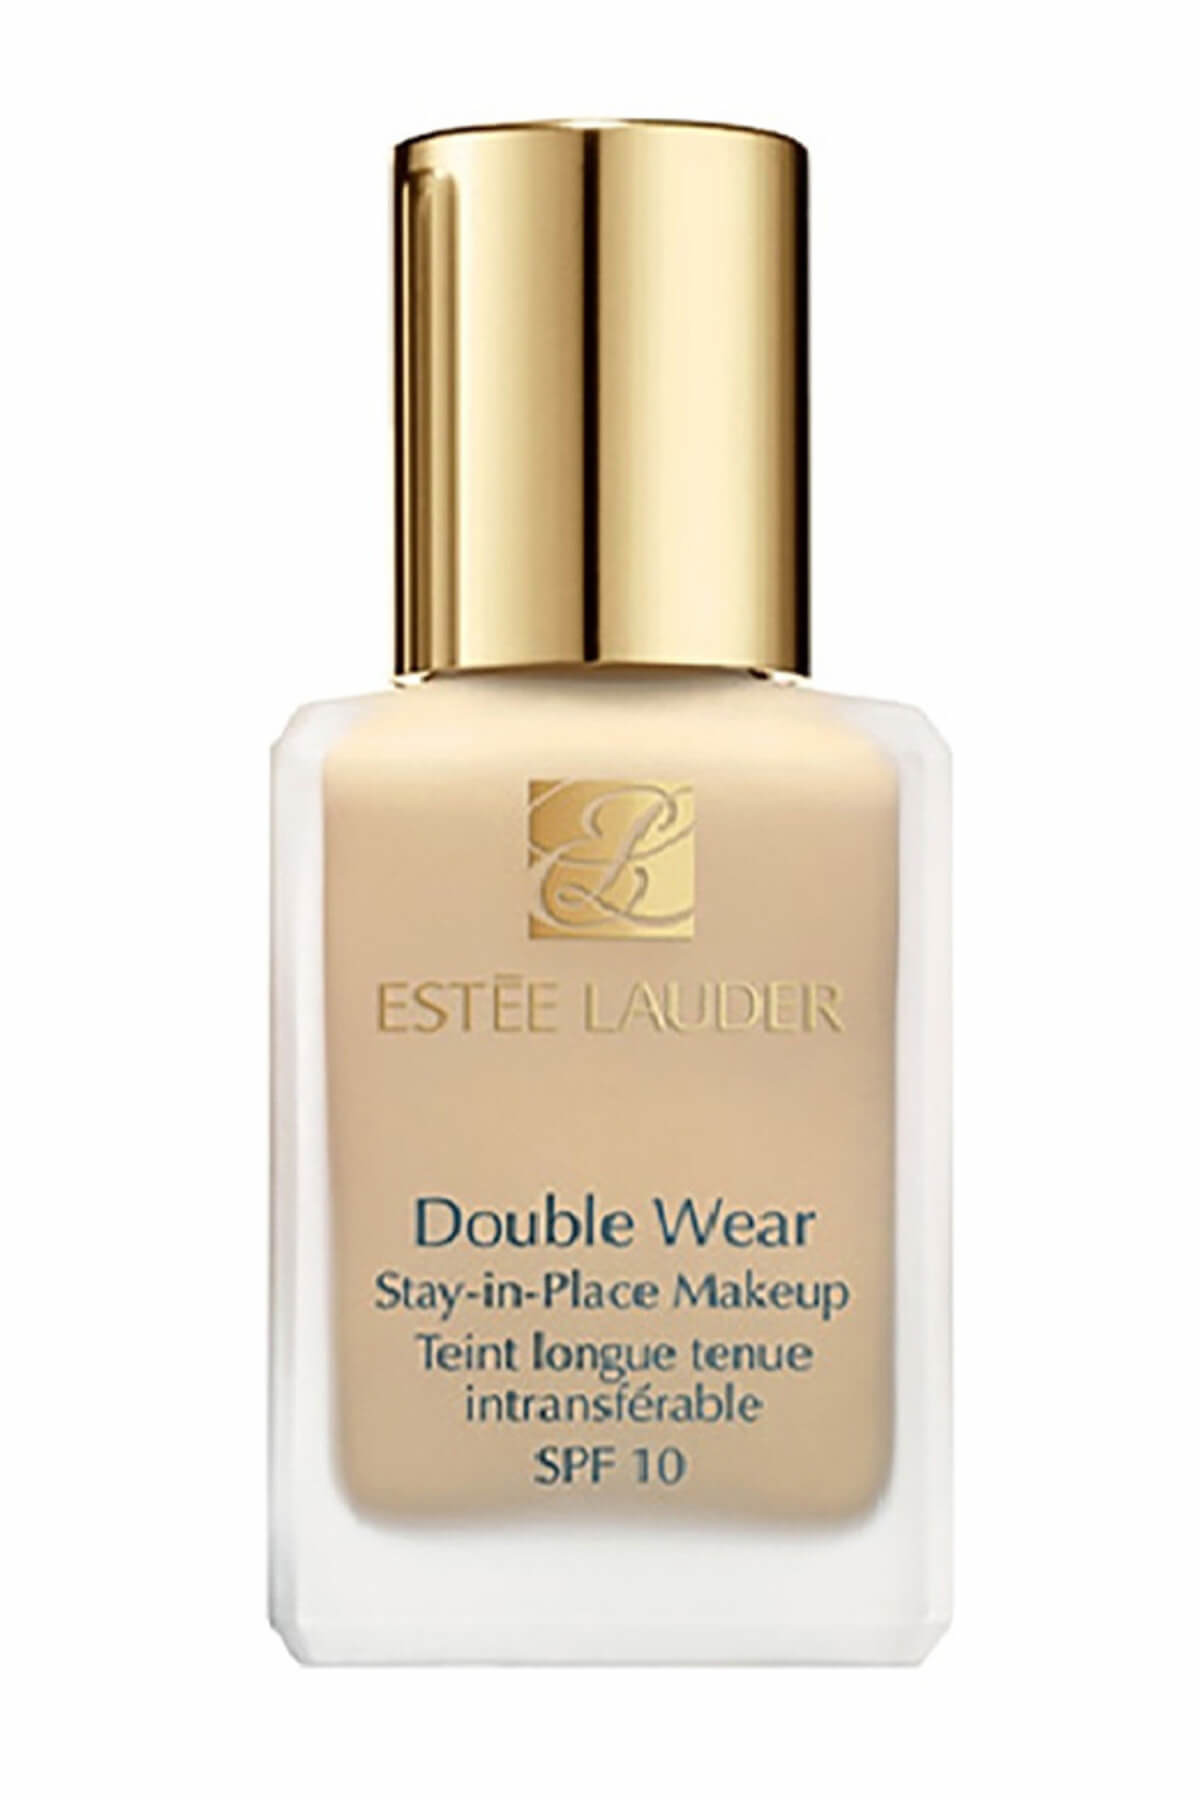 Estee Lauder Fondöten – Double Wear No: 1n0 Porcelain 30 Ml 887167178670 – 205.2 TL